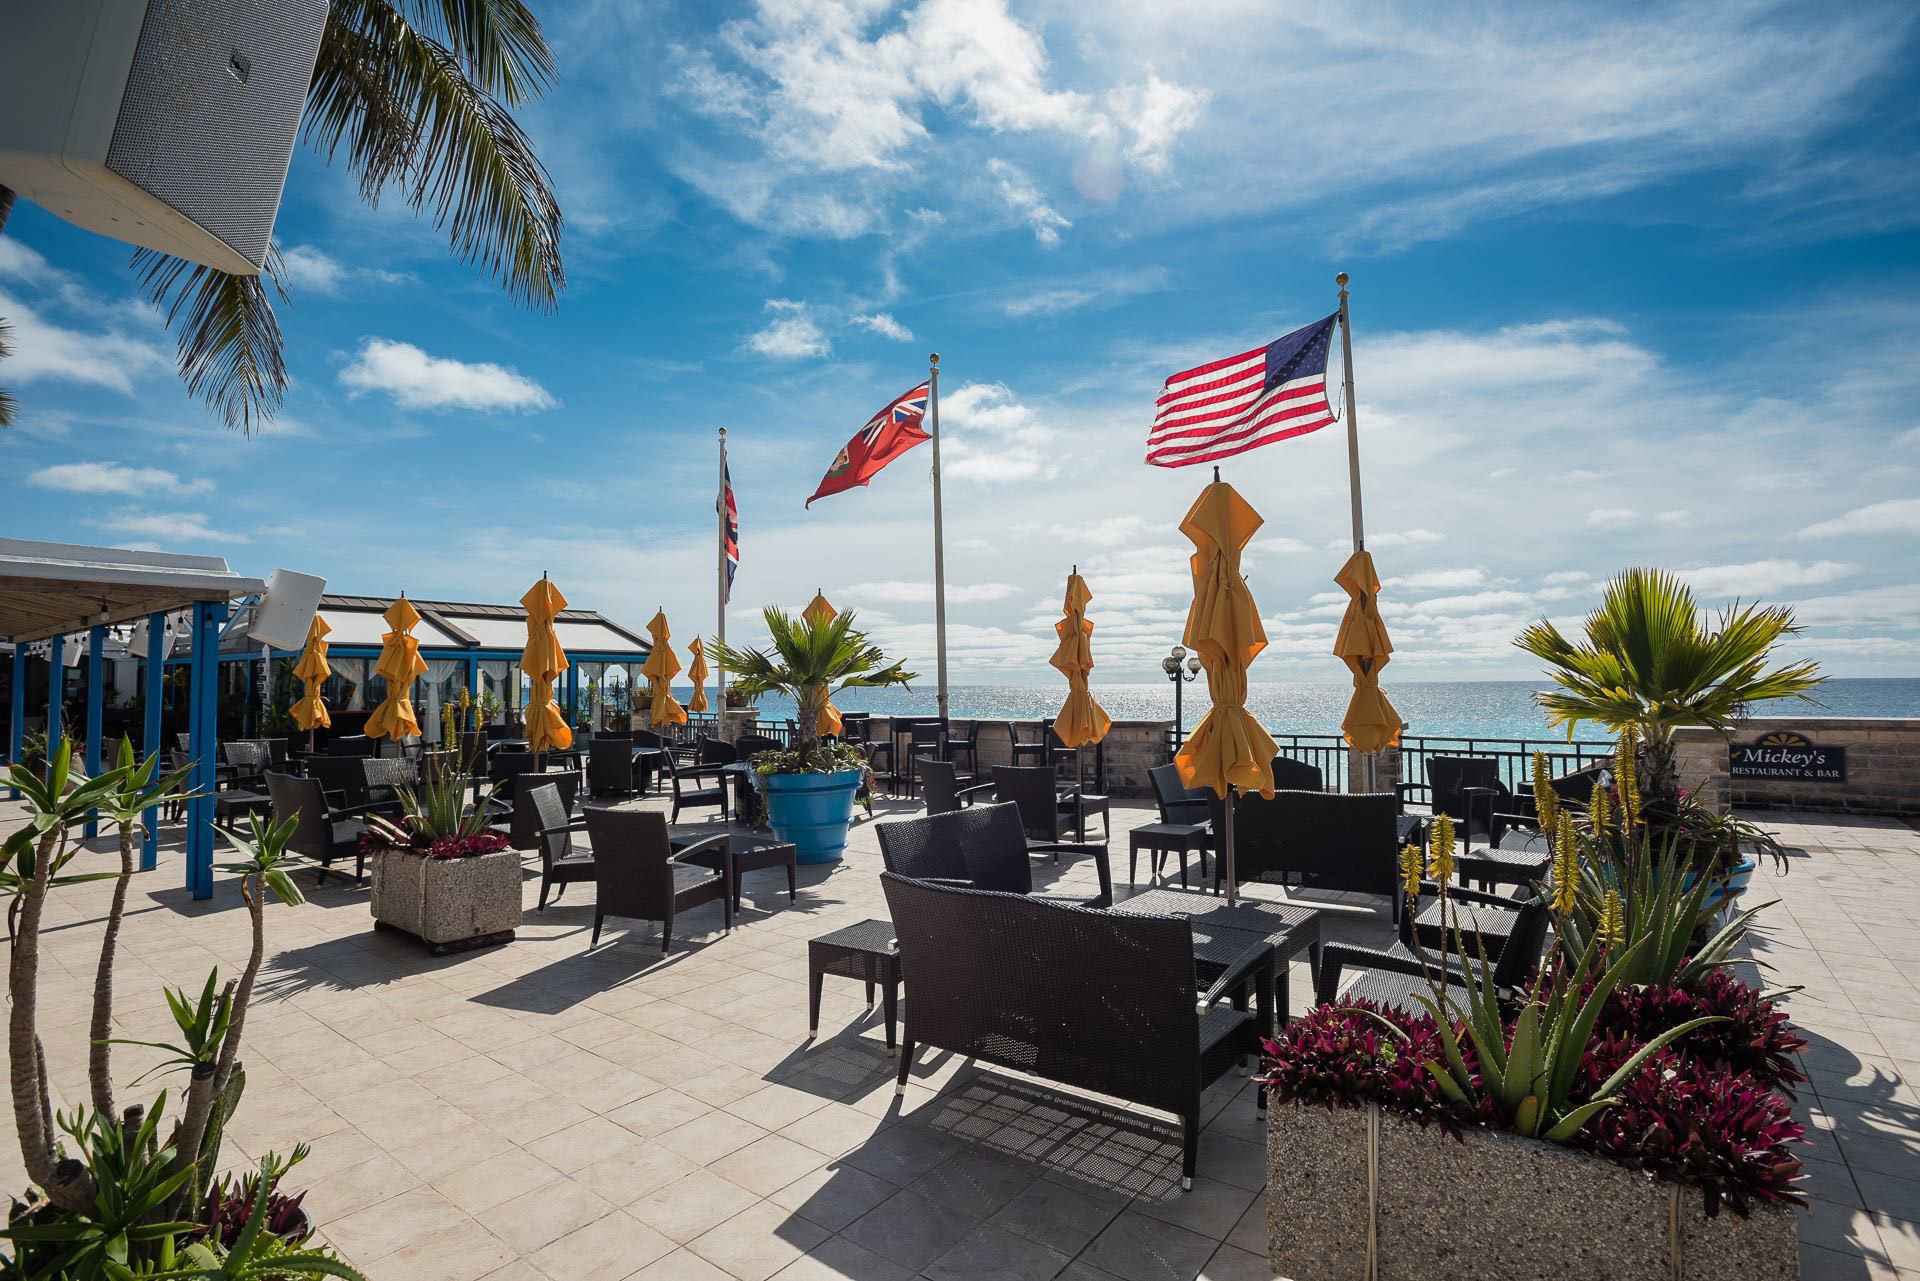 Seabreeze Lounge and Terrace